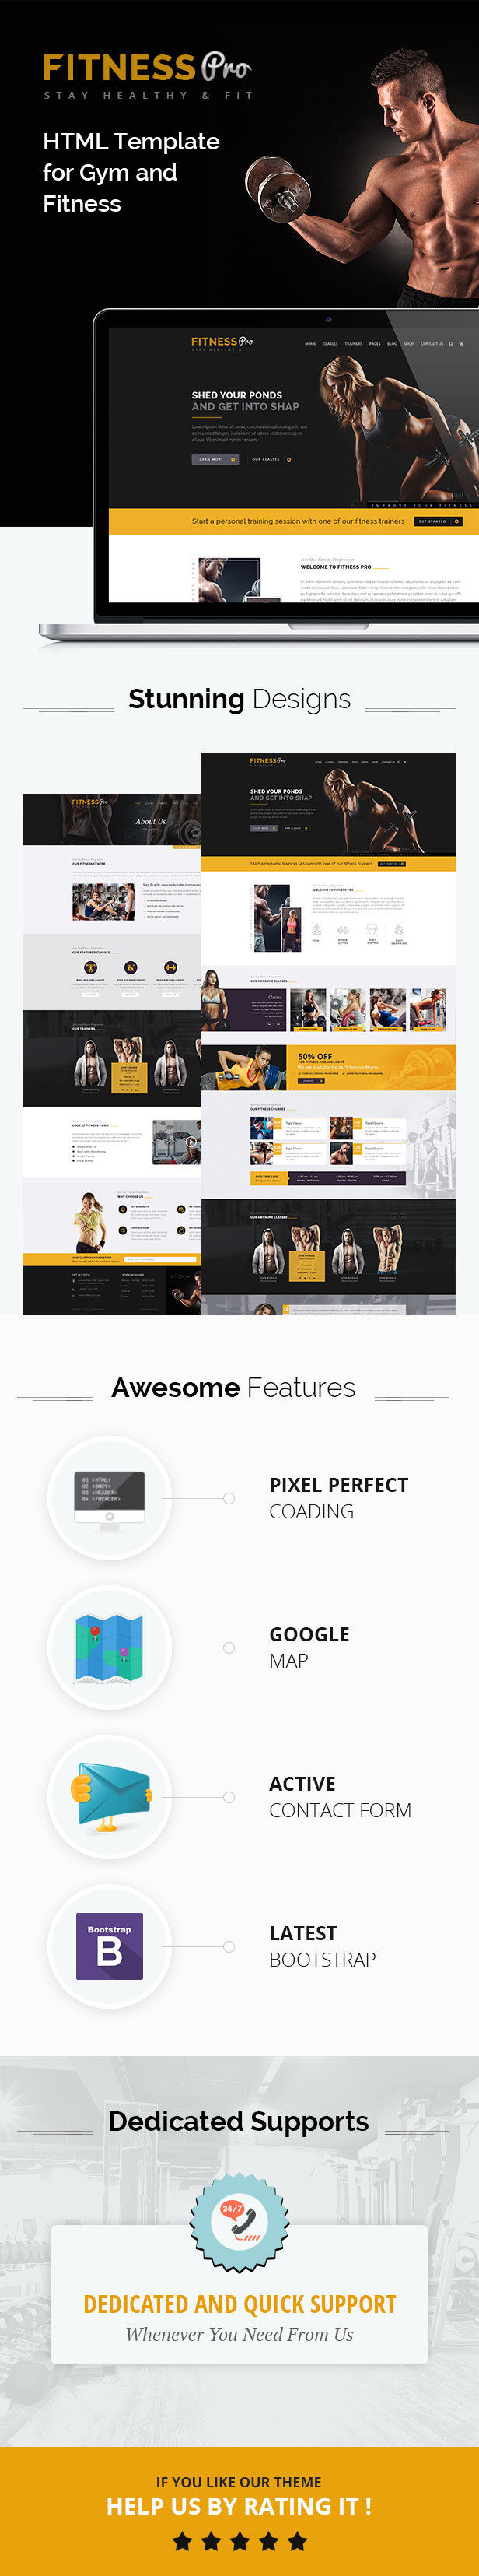 Fitness Pro - Gym Fitness HTML Template (Corporate) Nulled - http ...